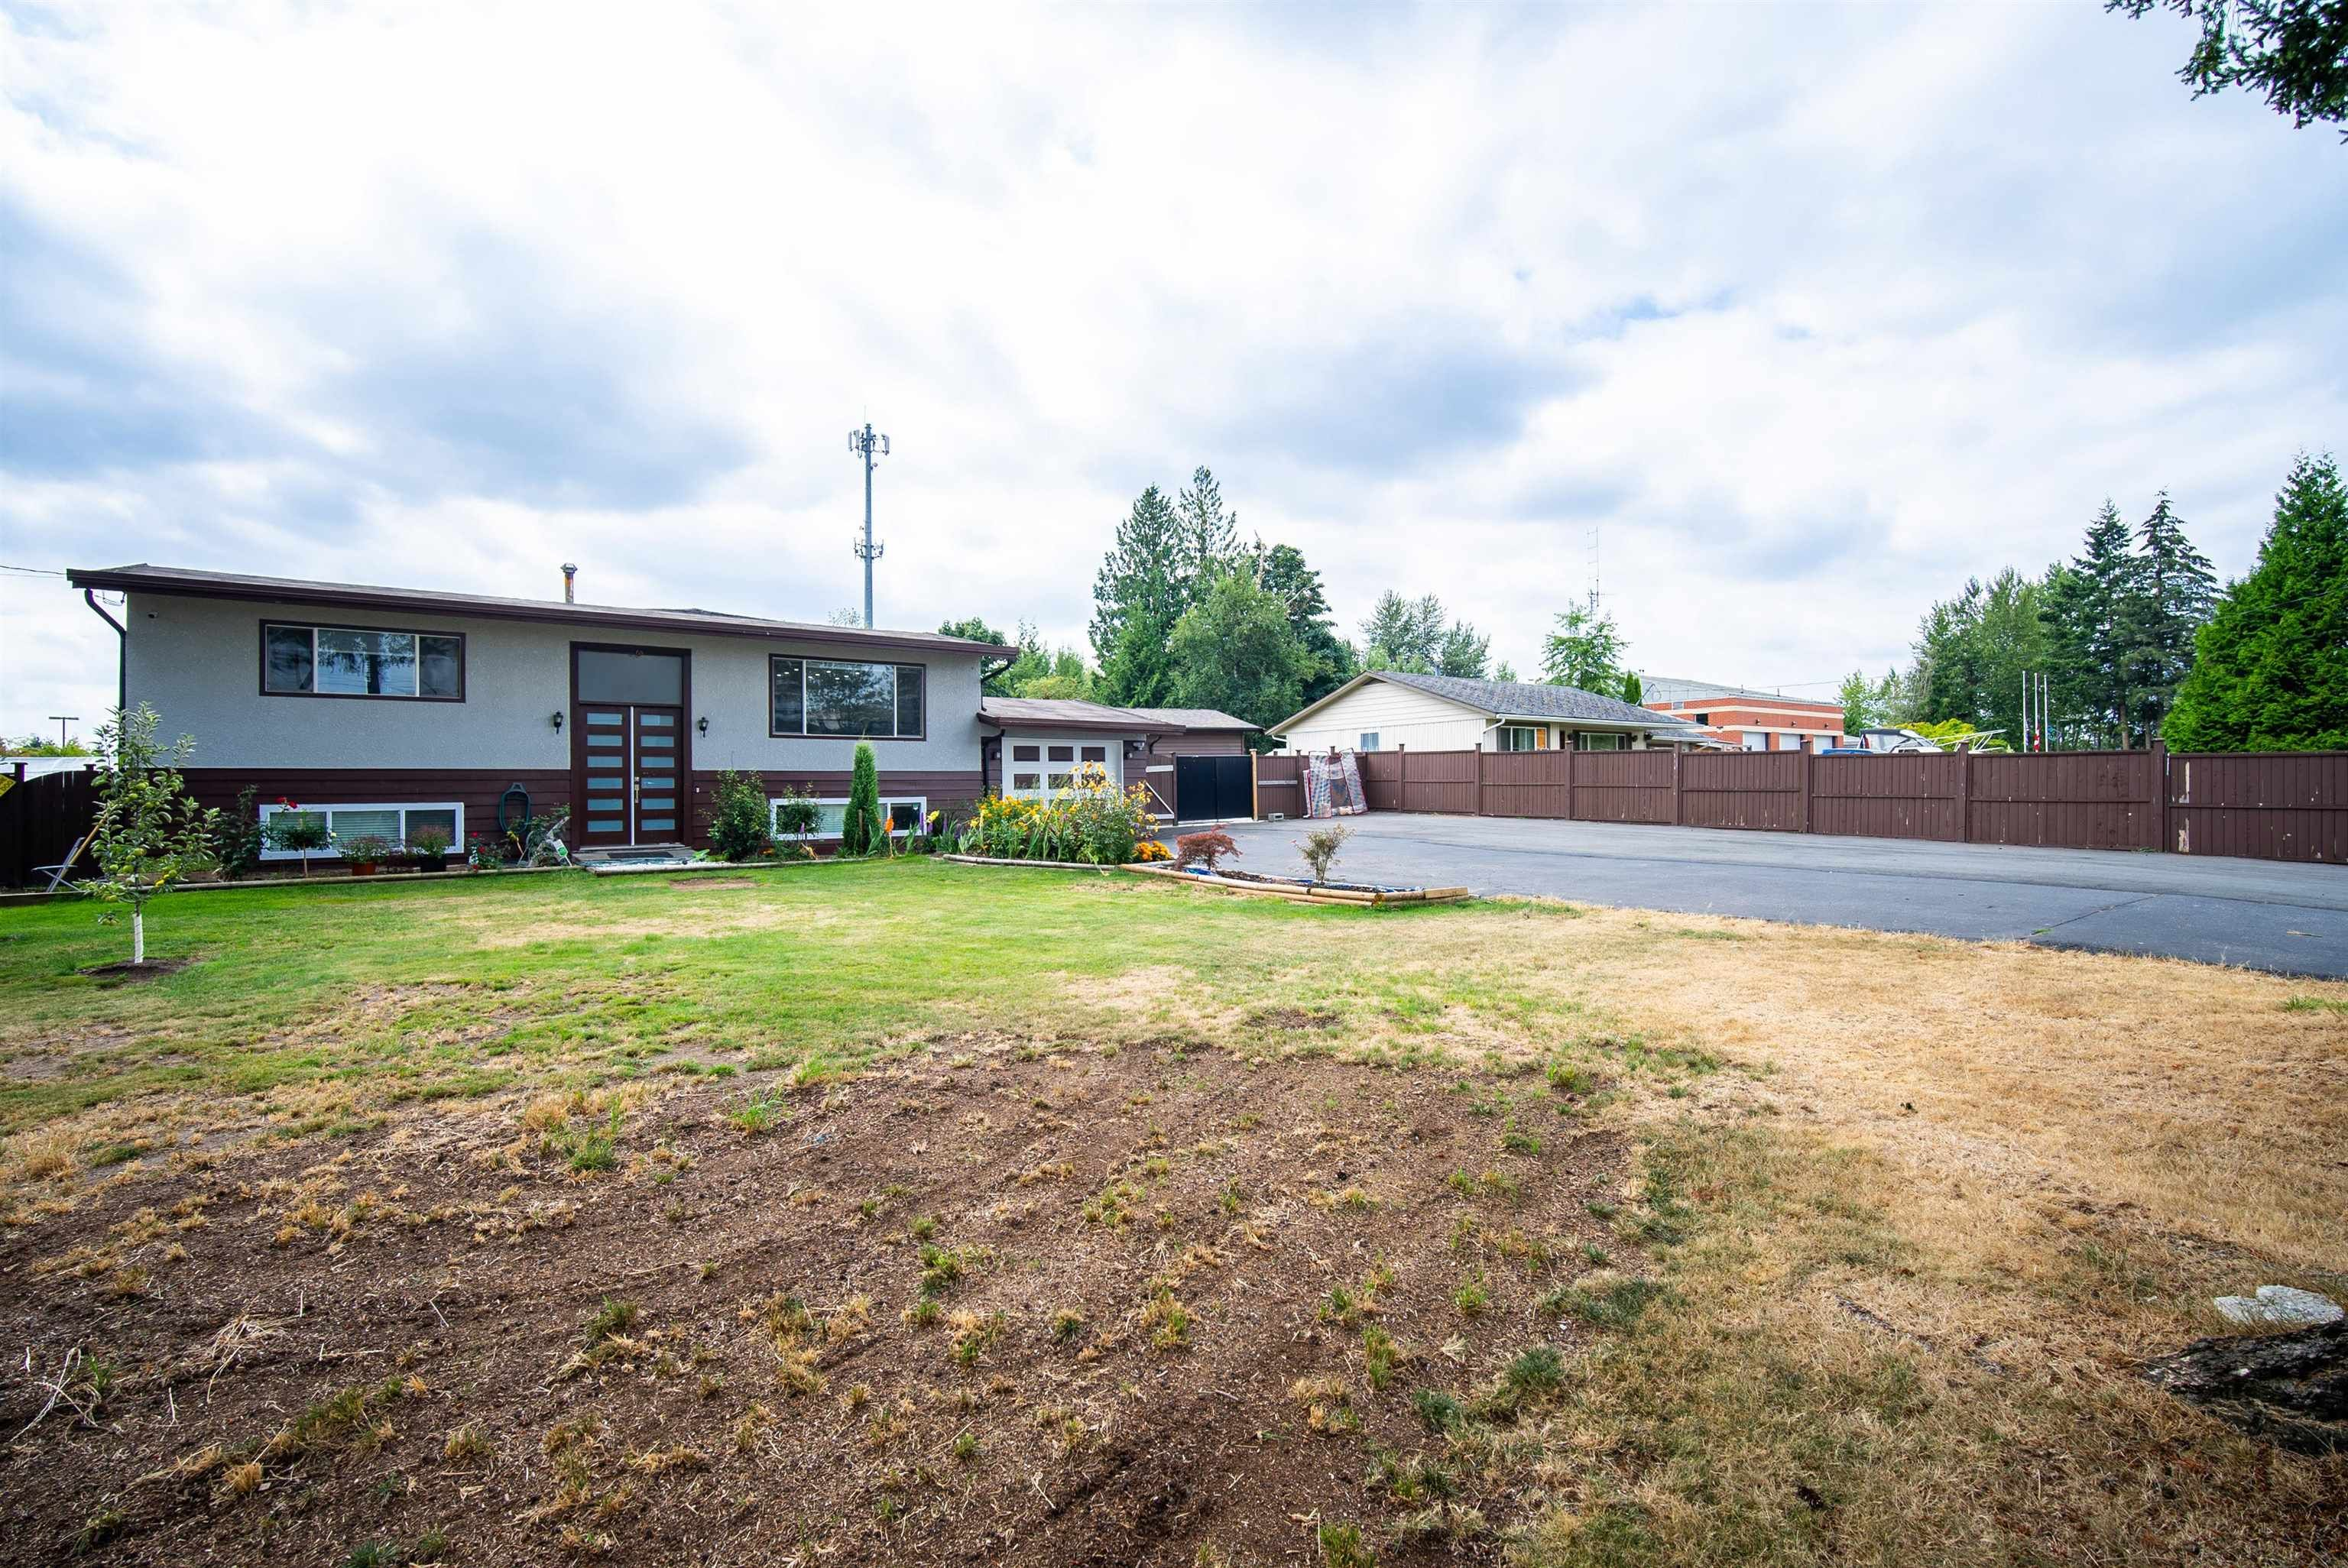 Main Photo: 26340 30A Avenue in Langley: Aldergrove Langley House for sale : MLS®# R2614135